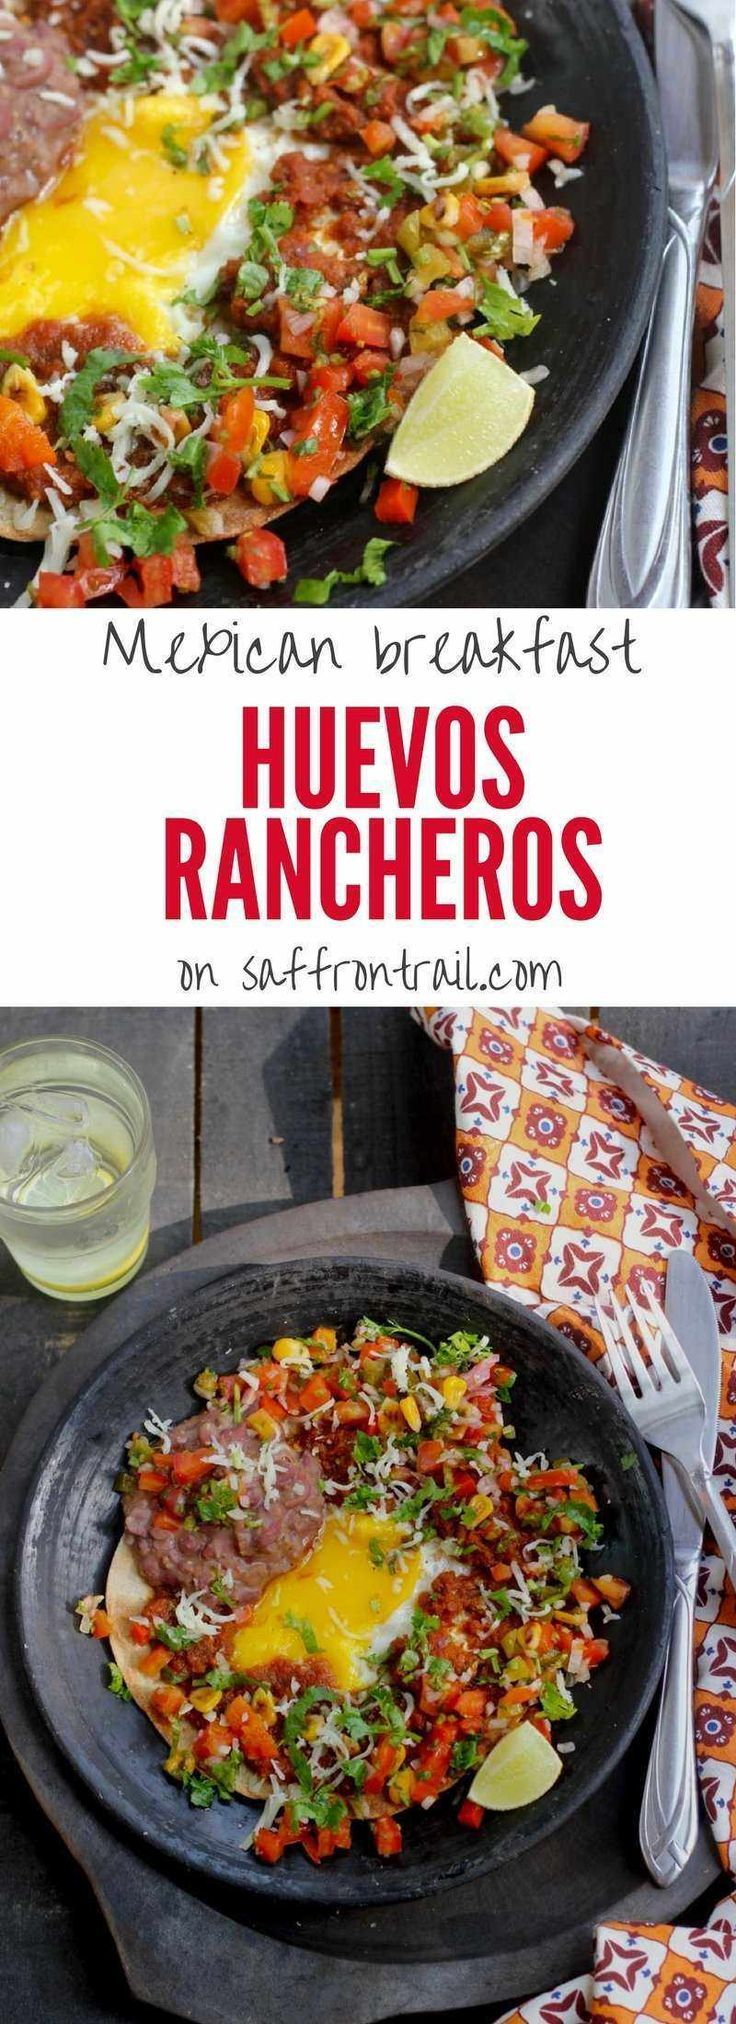 Mexican Vegetarian recipes  - Huevos Rancheros is one of the most popular Mexican breakfasts, meaning Ranch style eggs. Tortilla+refried beans+sauce+salsa+egg = The most kickass breakfast you can have.